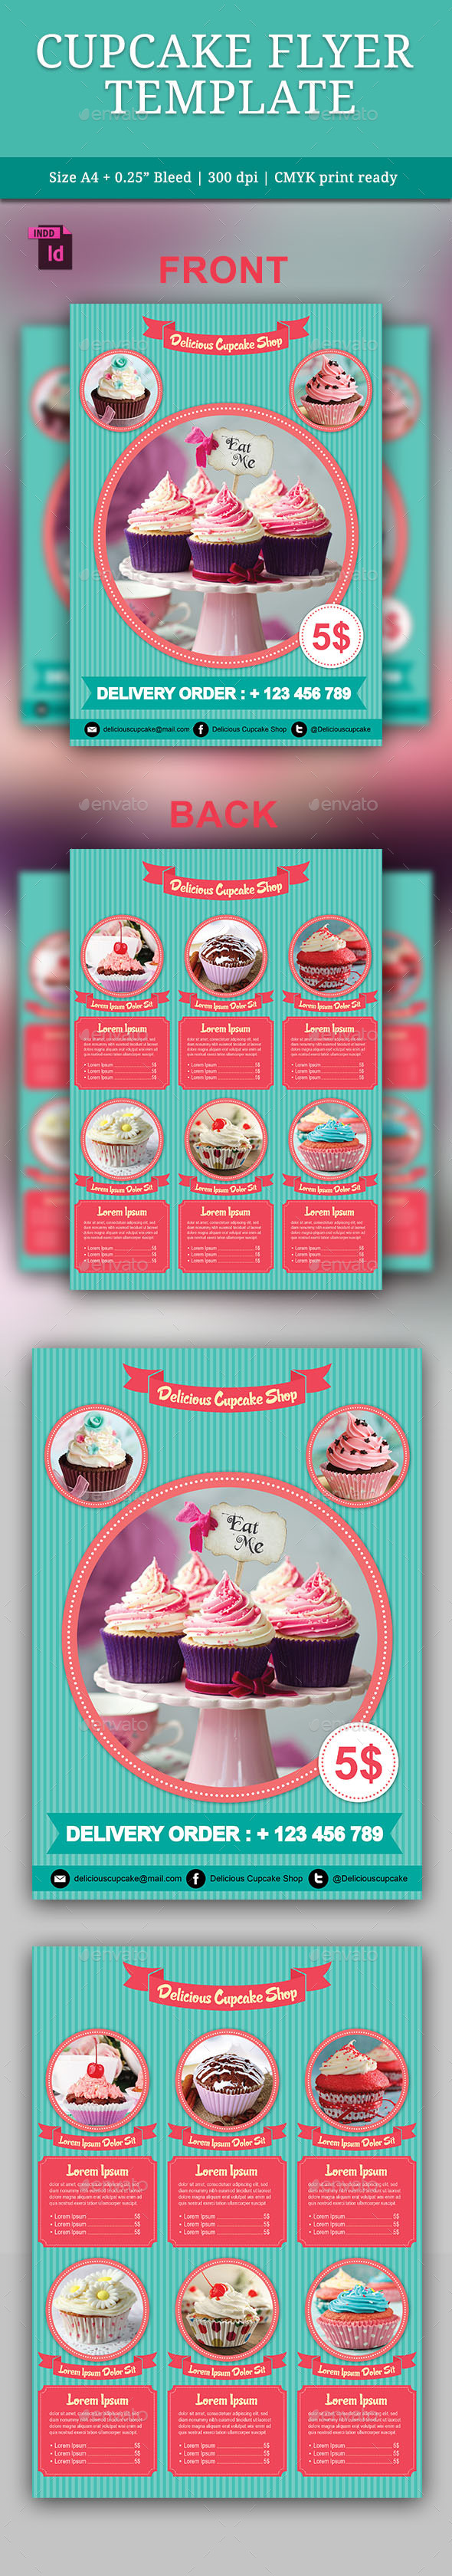 Cupcake Flyer Template - Restaurant Flyers